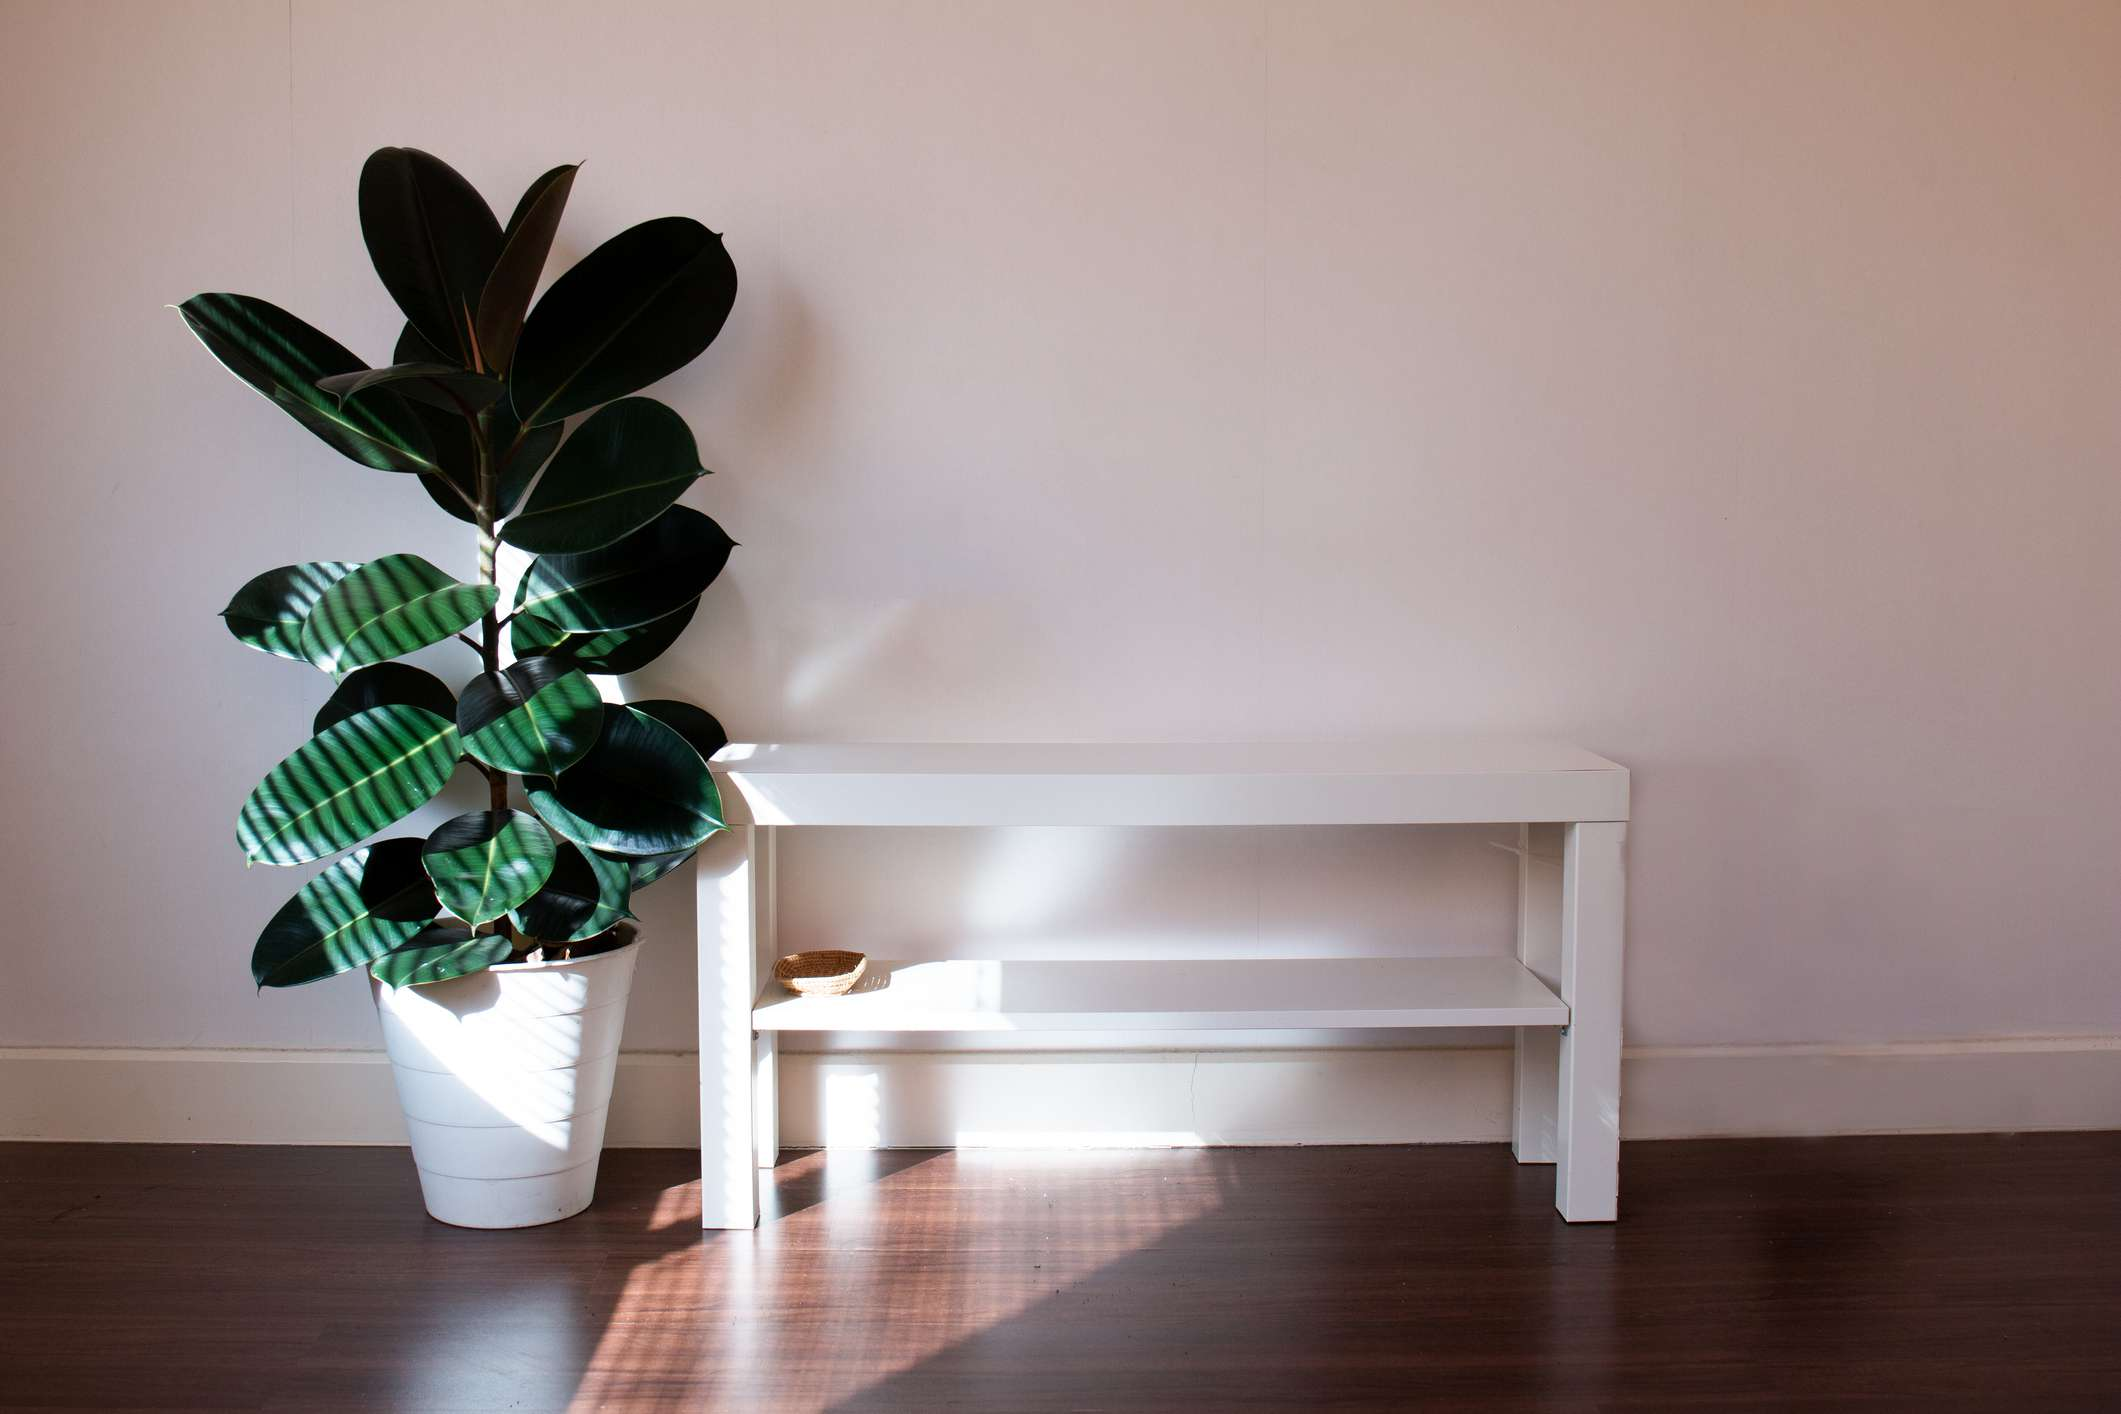 rubber plant next to a bench in a dark room